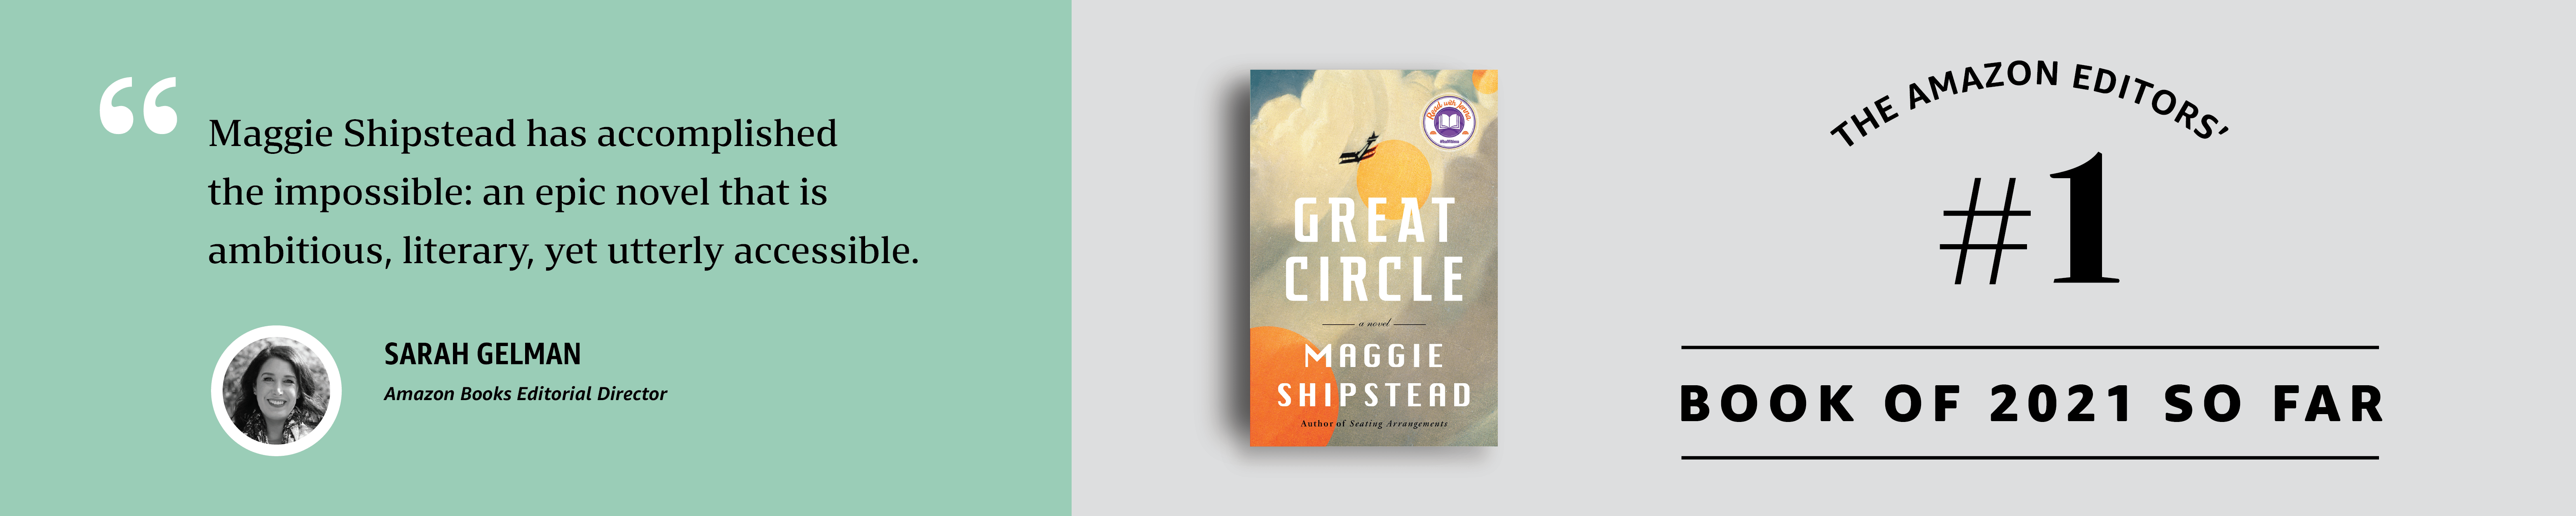 The Amazon Editors' #1 pick for the best book of 2021 so far: Great Circle by Maggie Shipstead